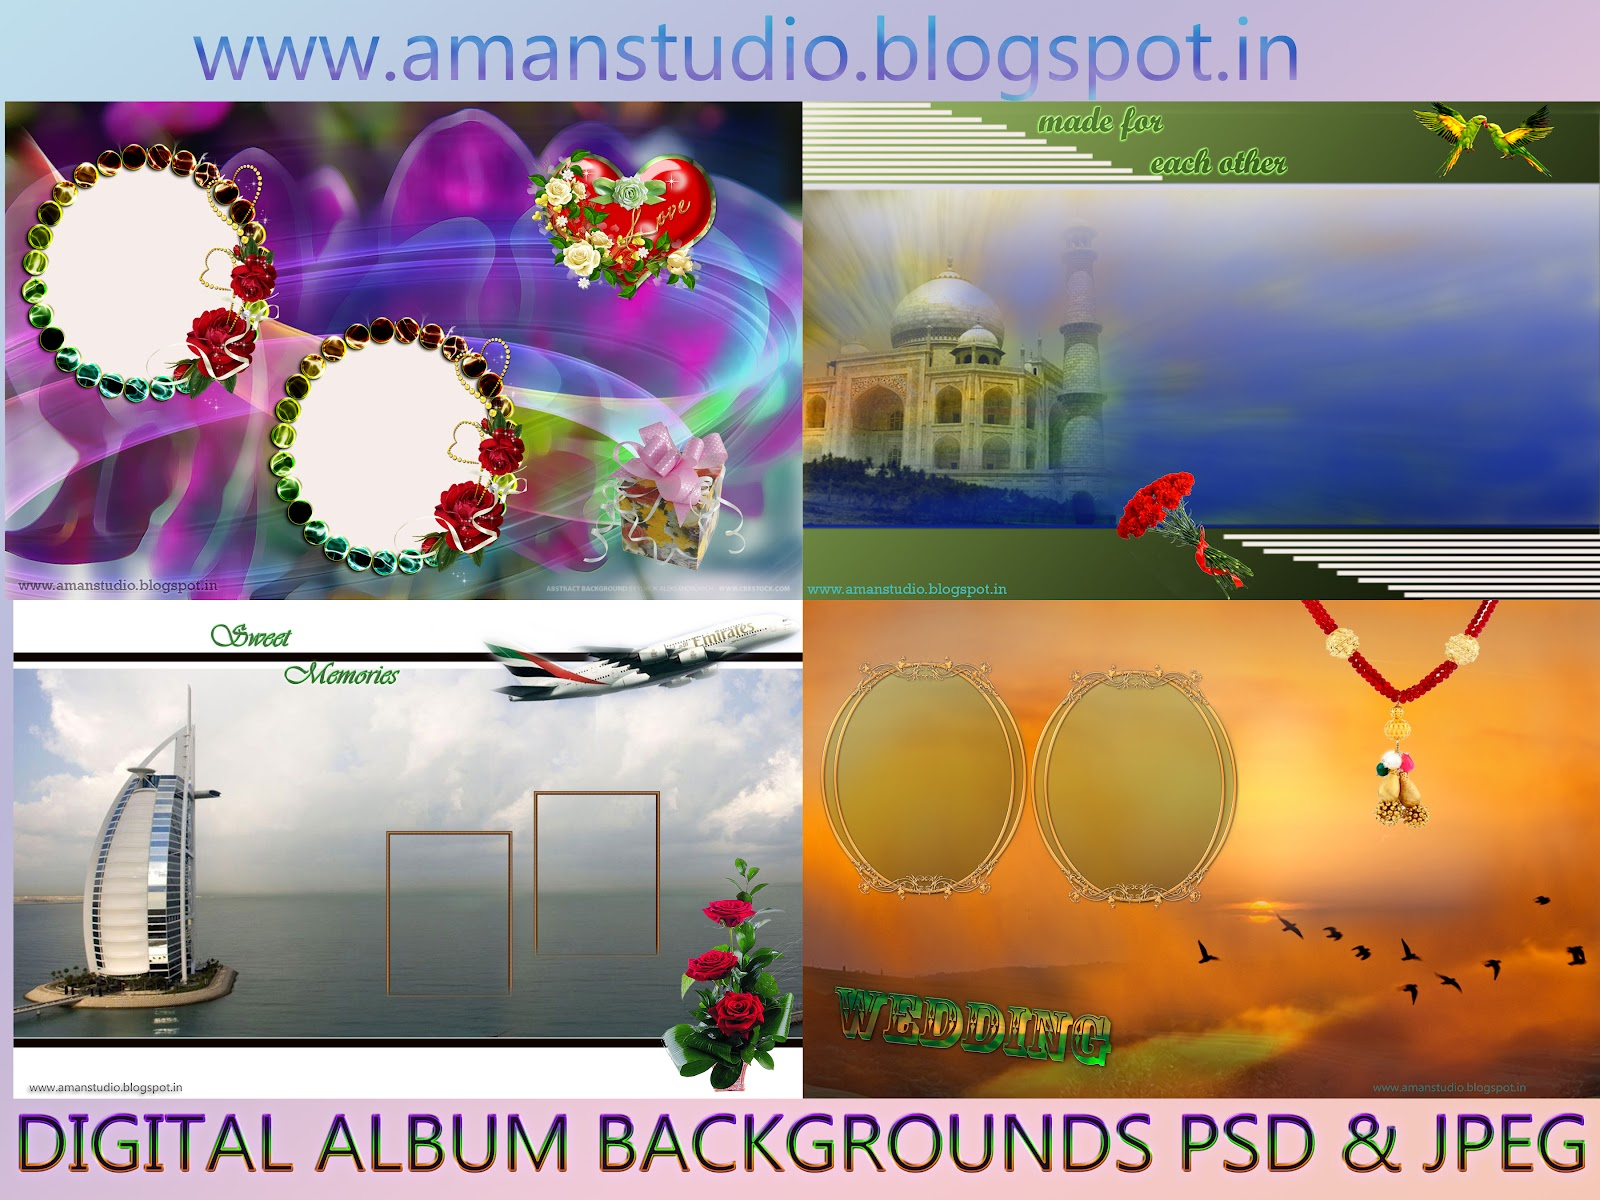 Digital Album Backgrounds psd & jpeg